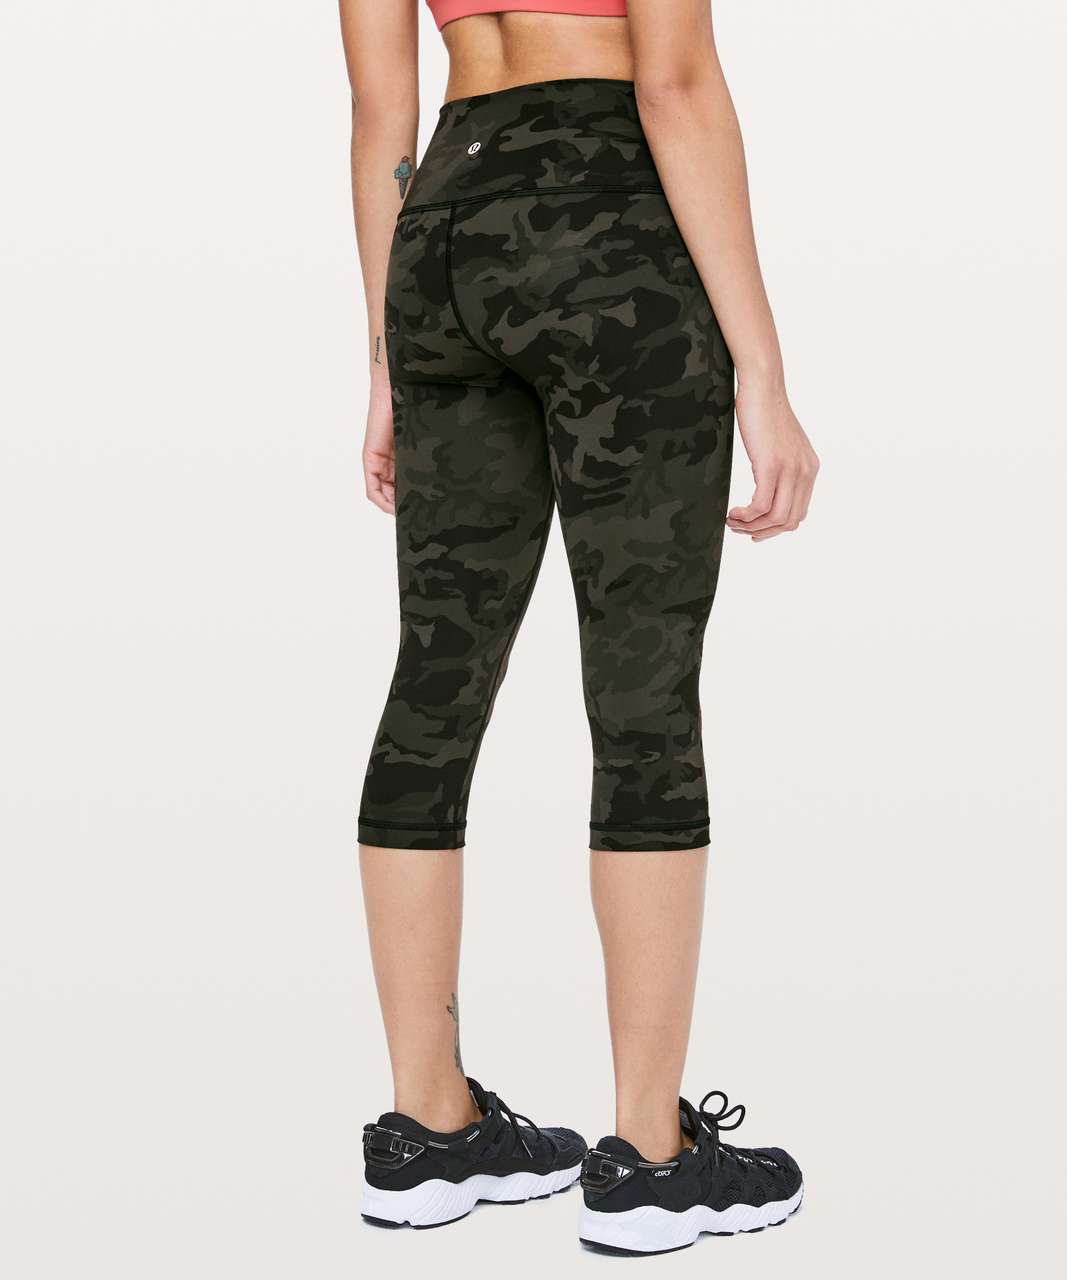 "Lululemon Wunder Under High-Rise 1/2 Tight Full-On Luxtreme 17"" - Incognito Camo Multi Gator Green"